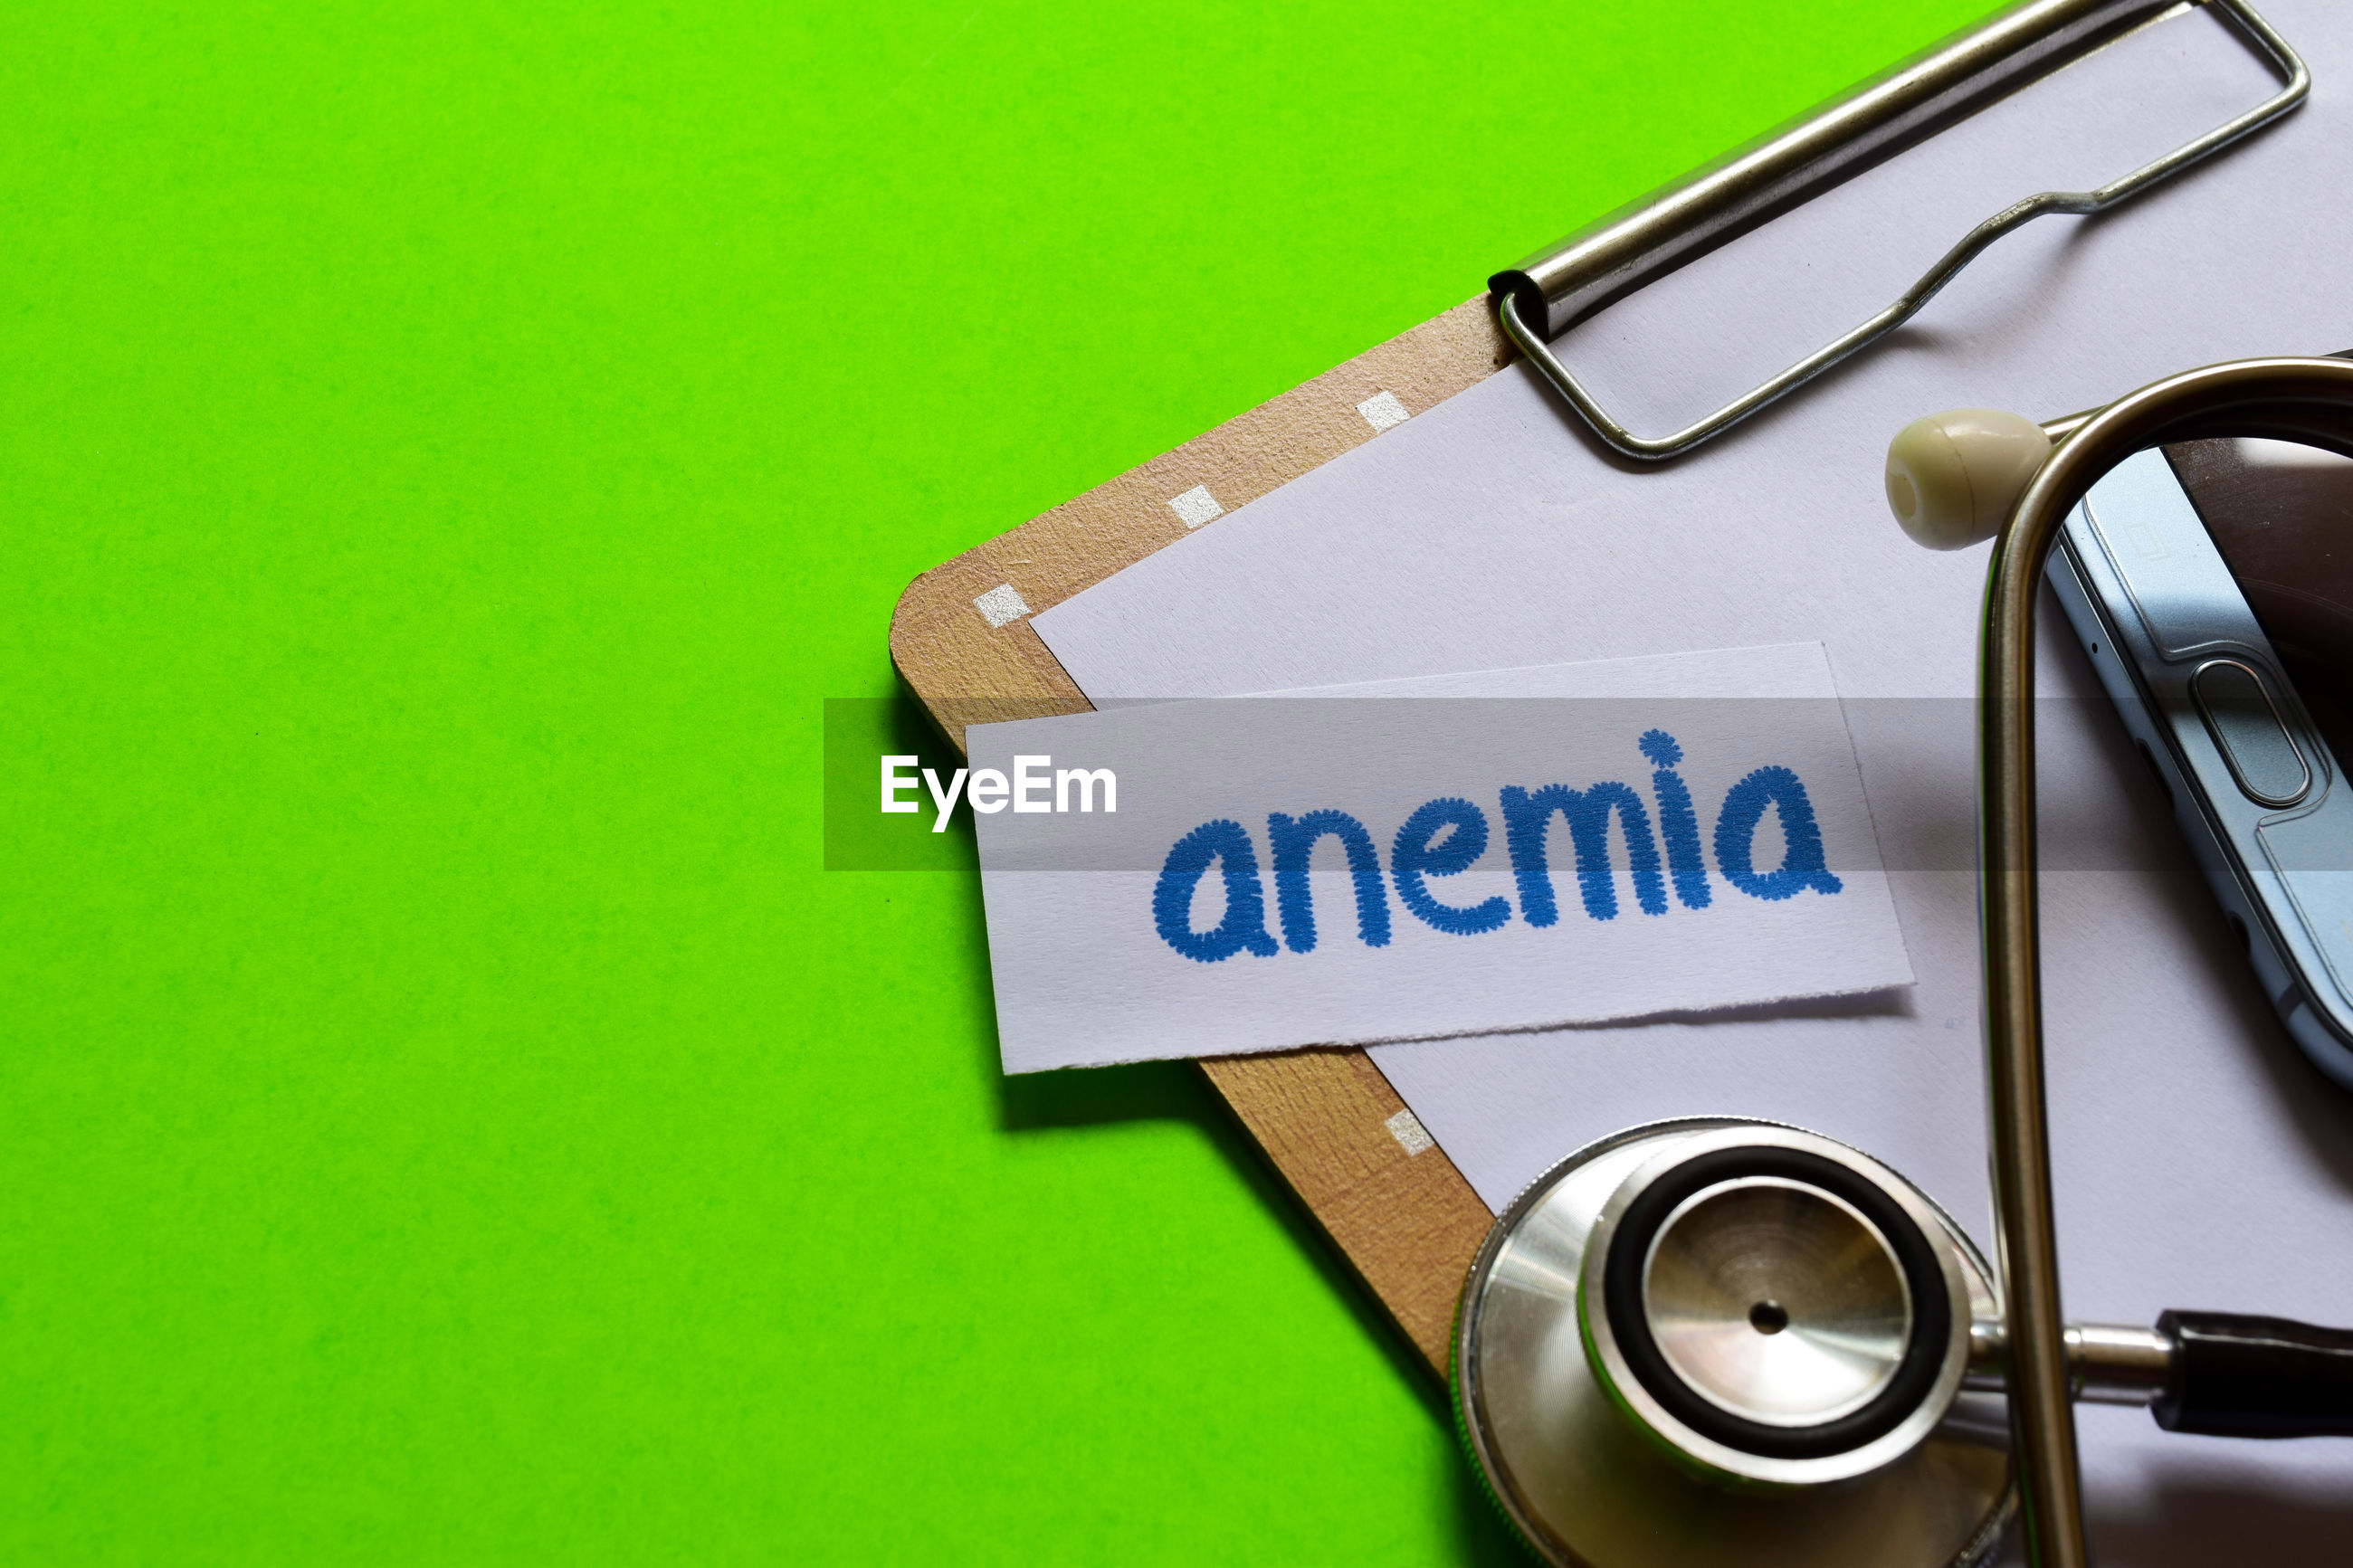 High angle view of anemia text on paper with clipboard and stethoscope over green background